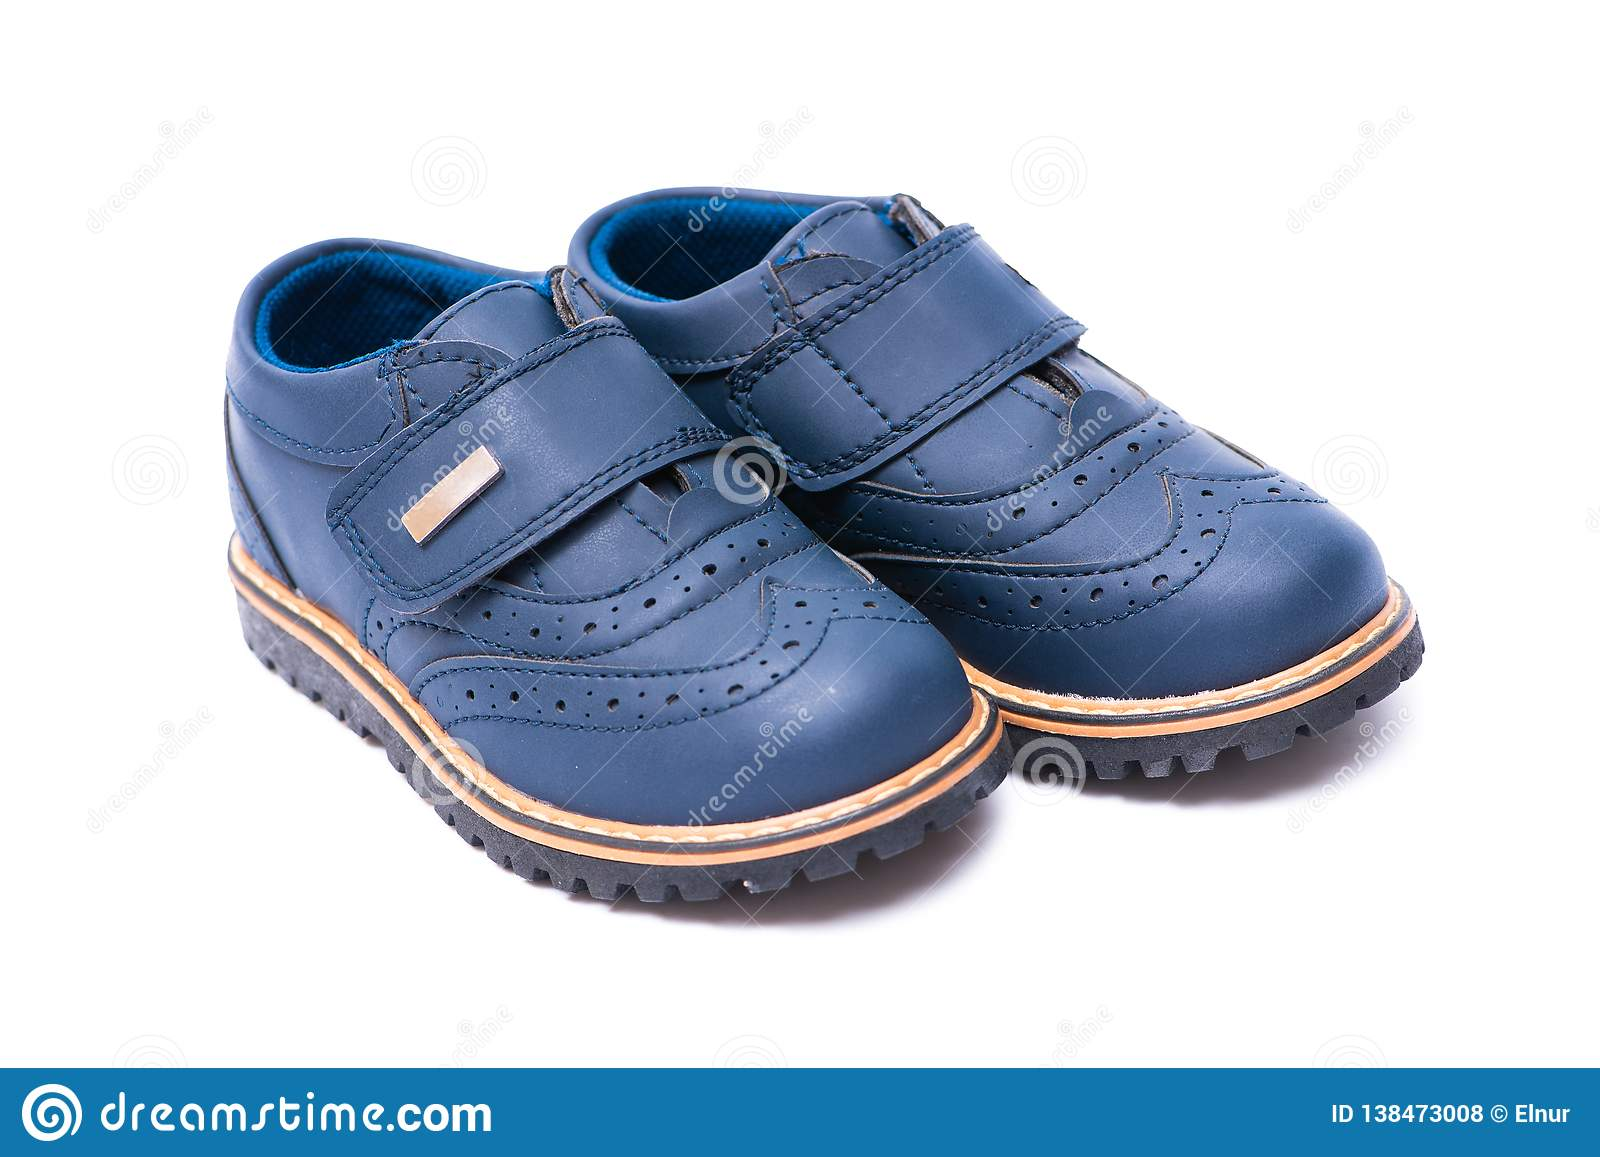 7d0195918 The Blue Baby Shoes Isolated On White Background Stock Photo - Image ...